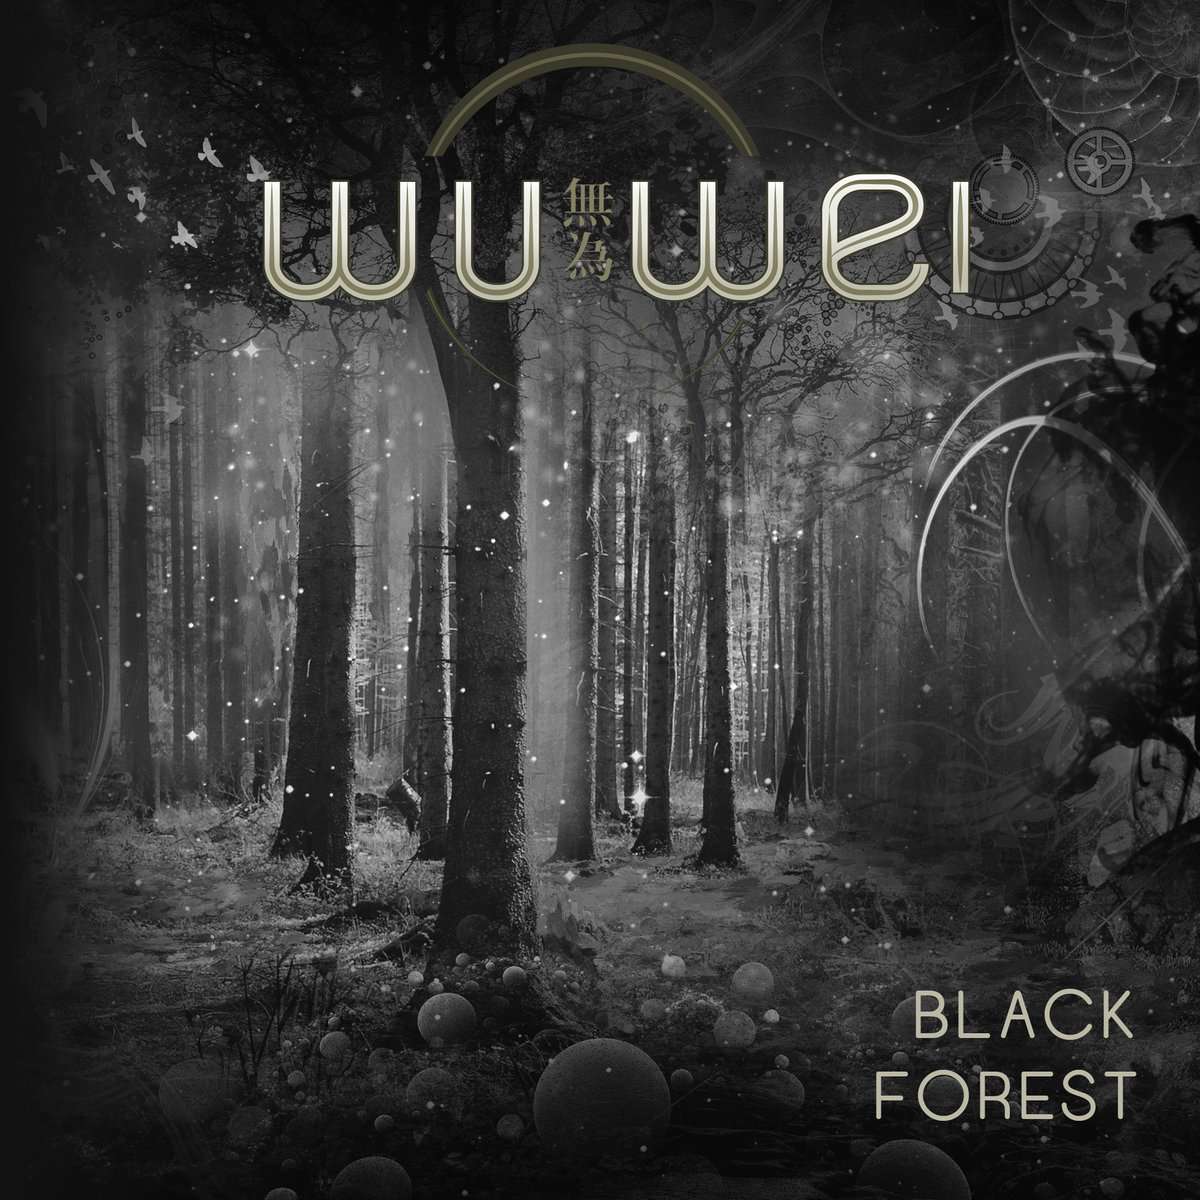 Wu Wei - Black Forest @ 'Black Forest' album (electronic, future bass)